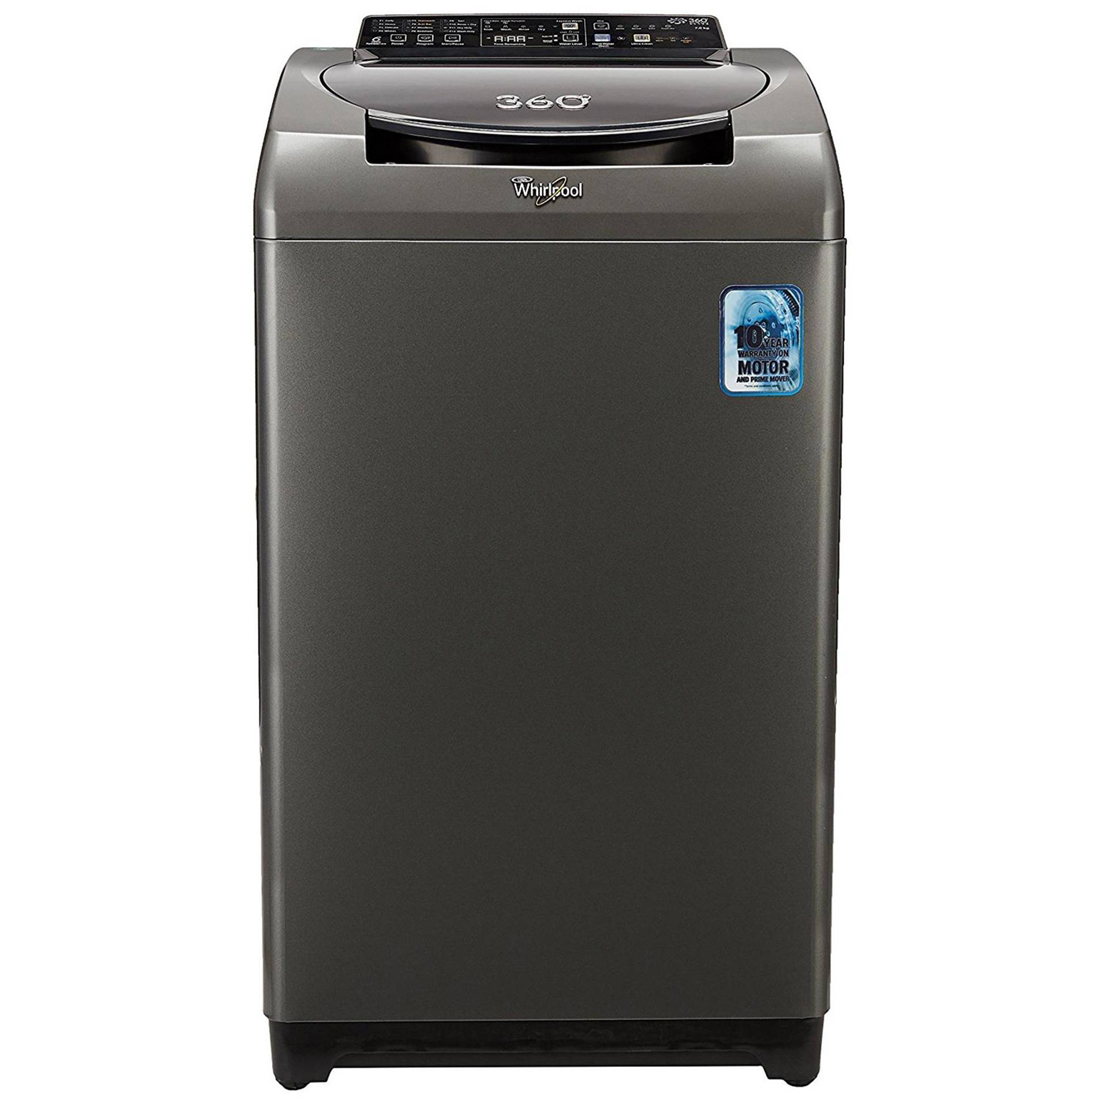 Whirlpool 7 Kg Fully-Automatic Top Loading Washing Machine (360 Degree Bloomwash Ultra 7.0  Graphite)